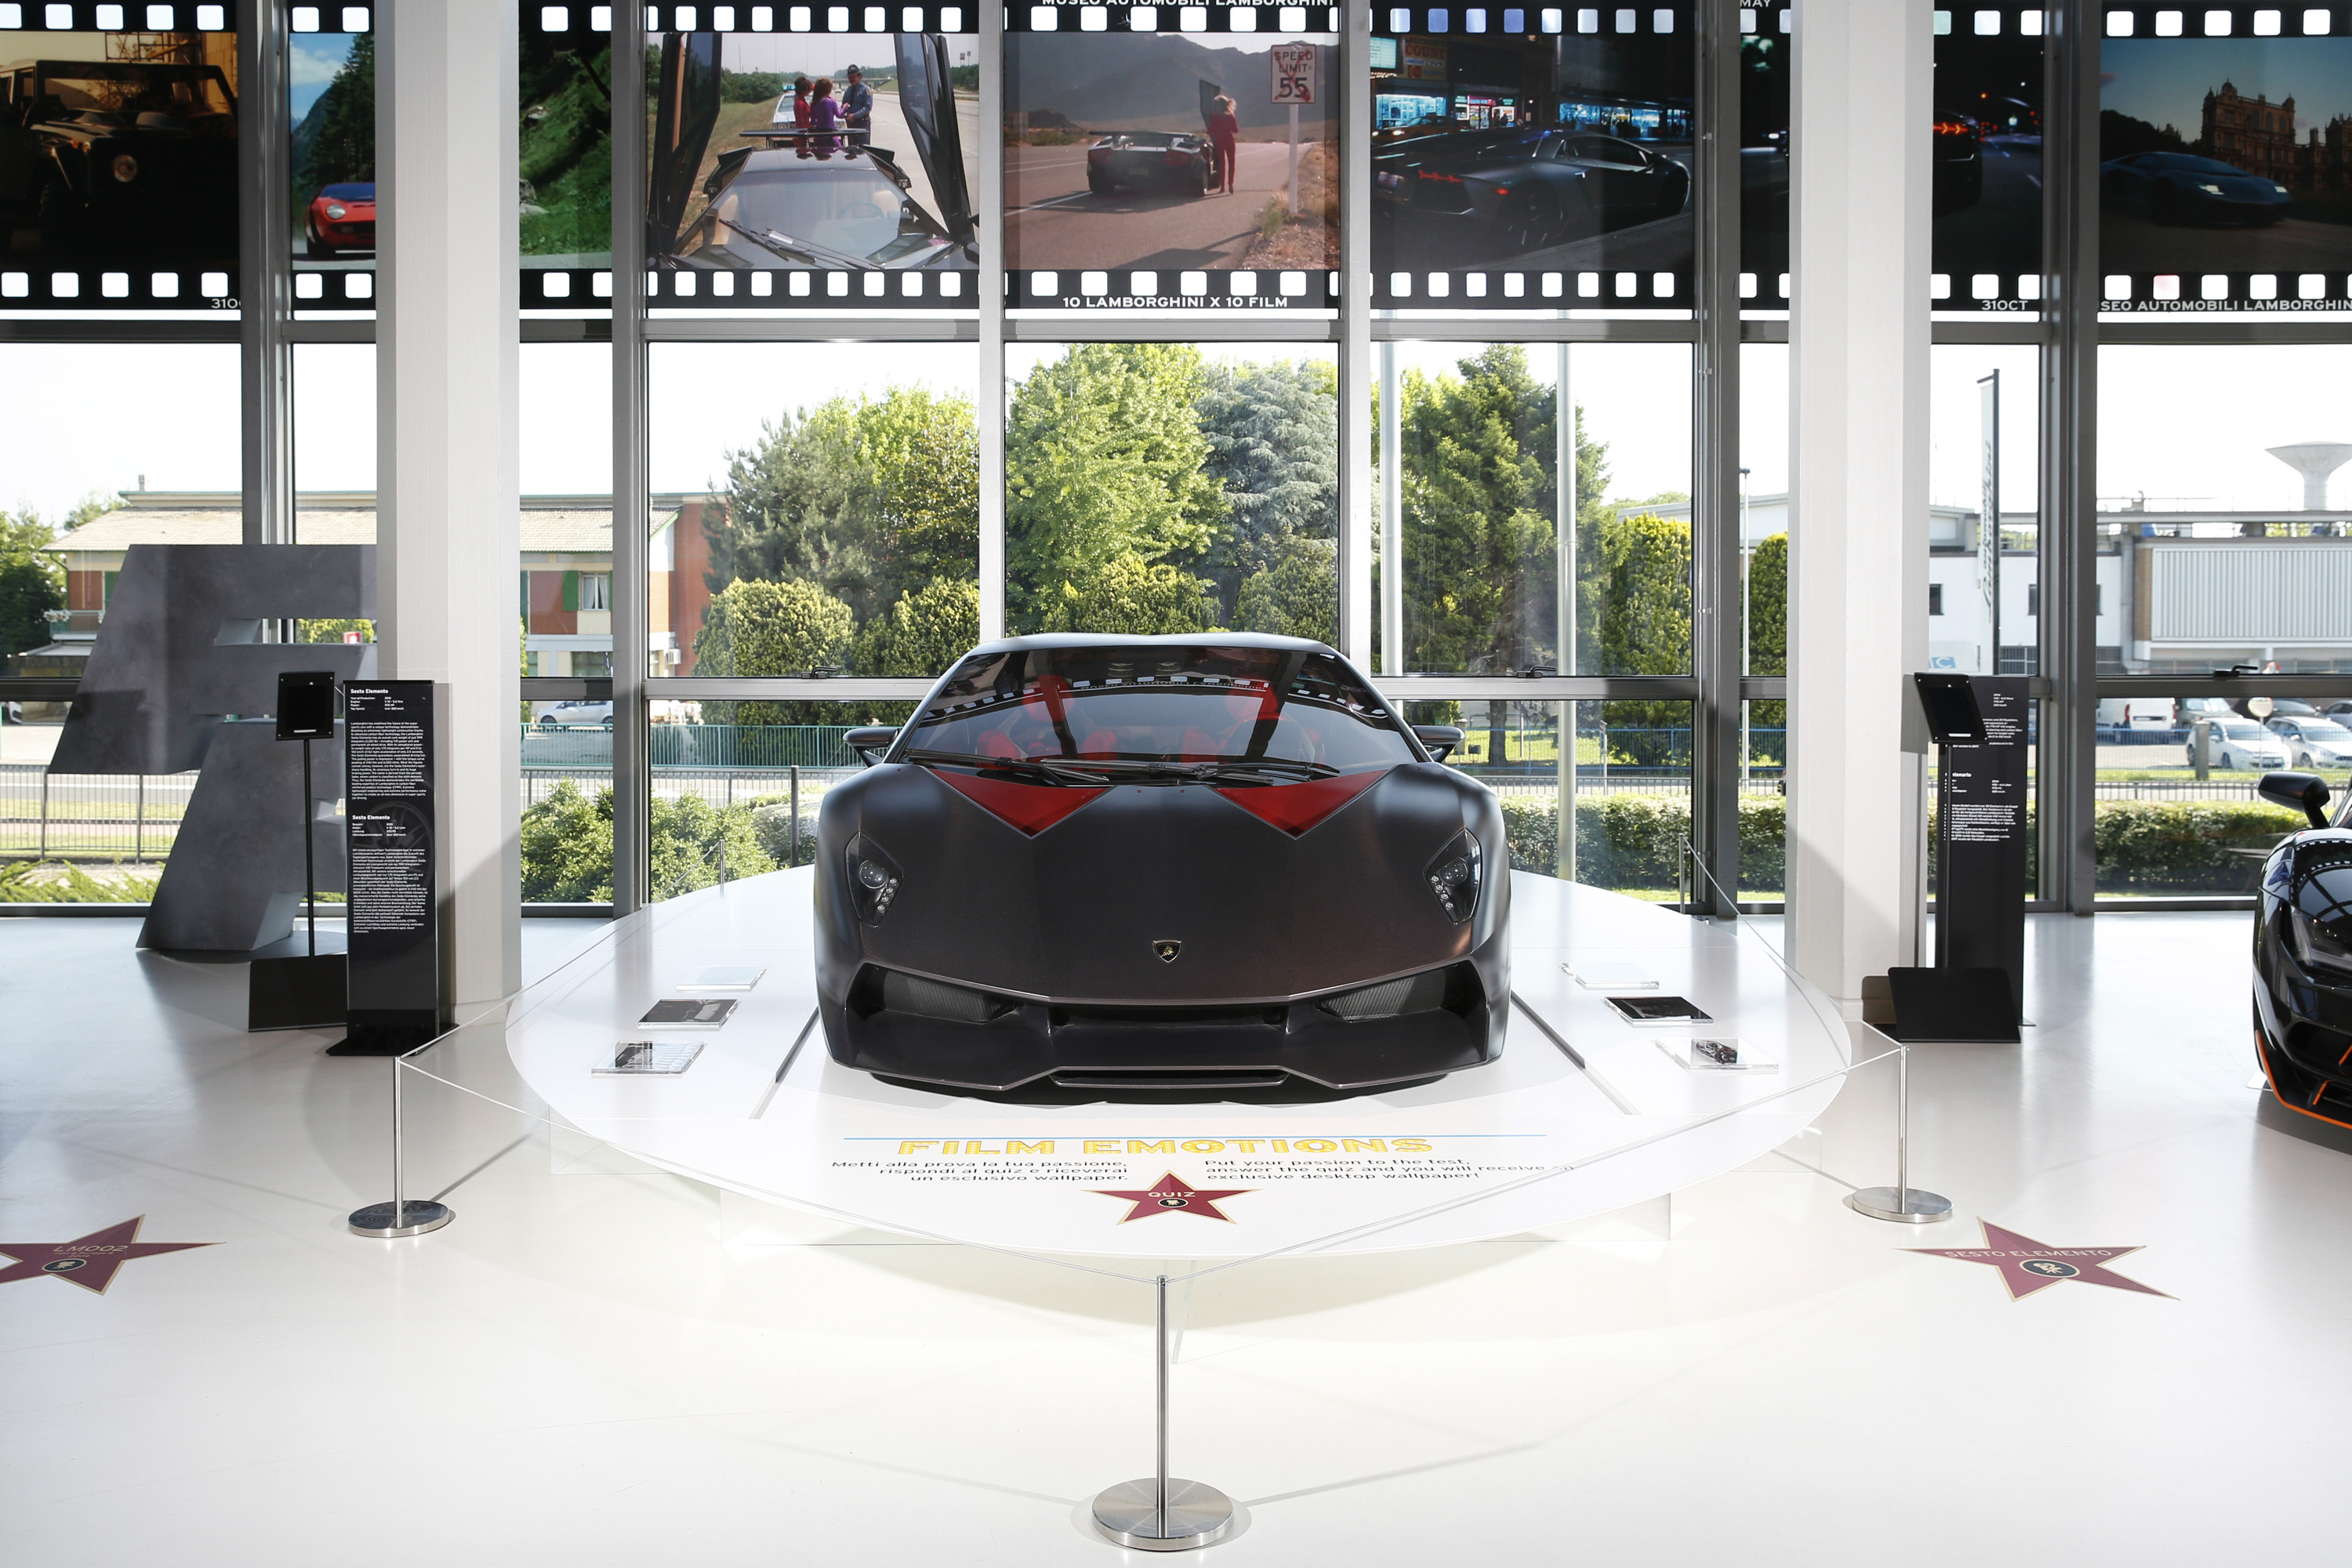 Lamborghini S Hollywood Cars Are Now On Display In Its Headquarters